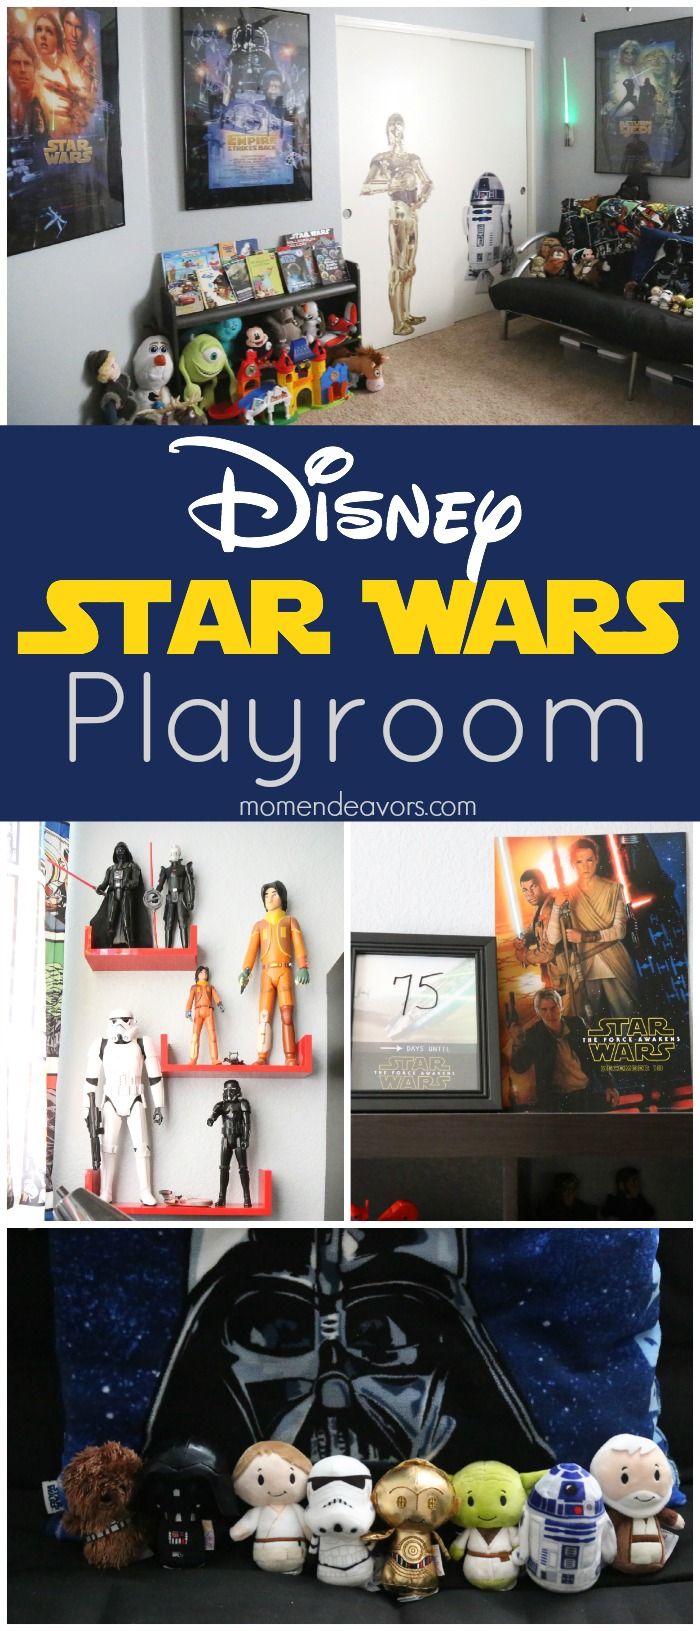 Disney Star Wars Playroom